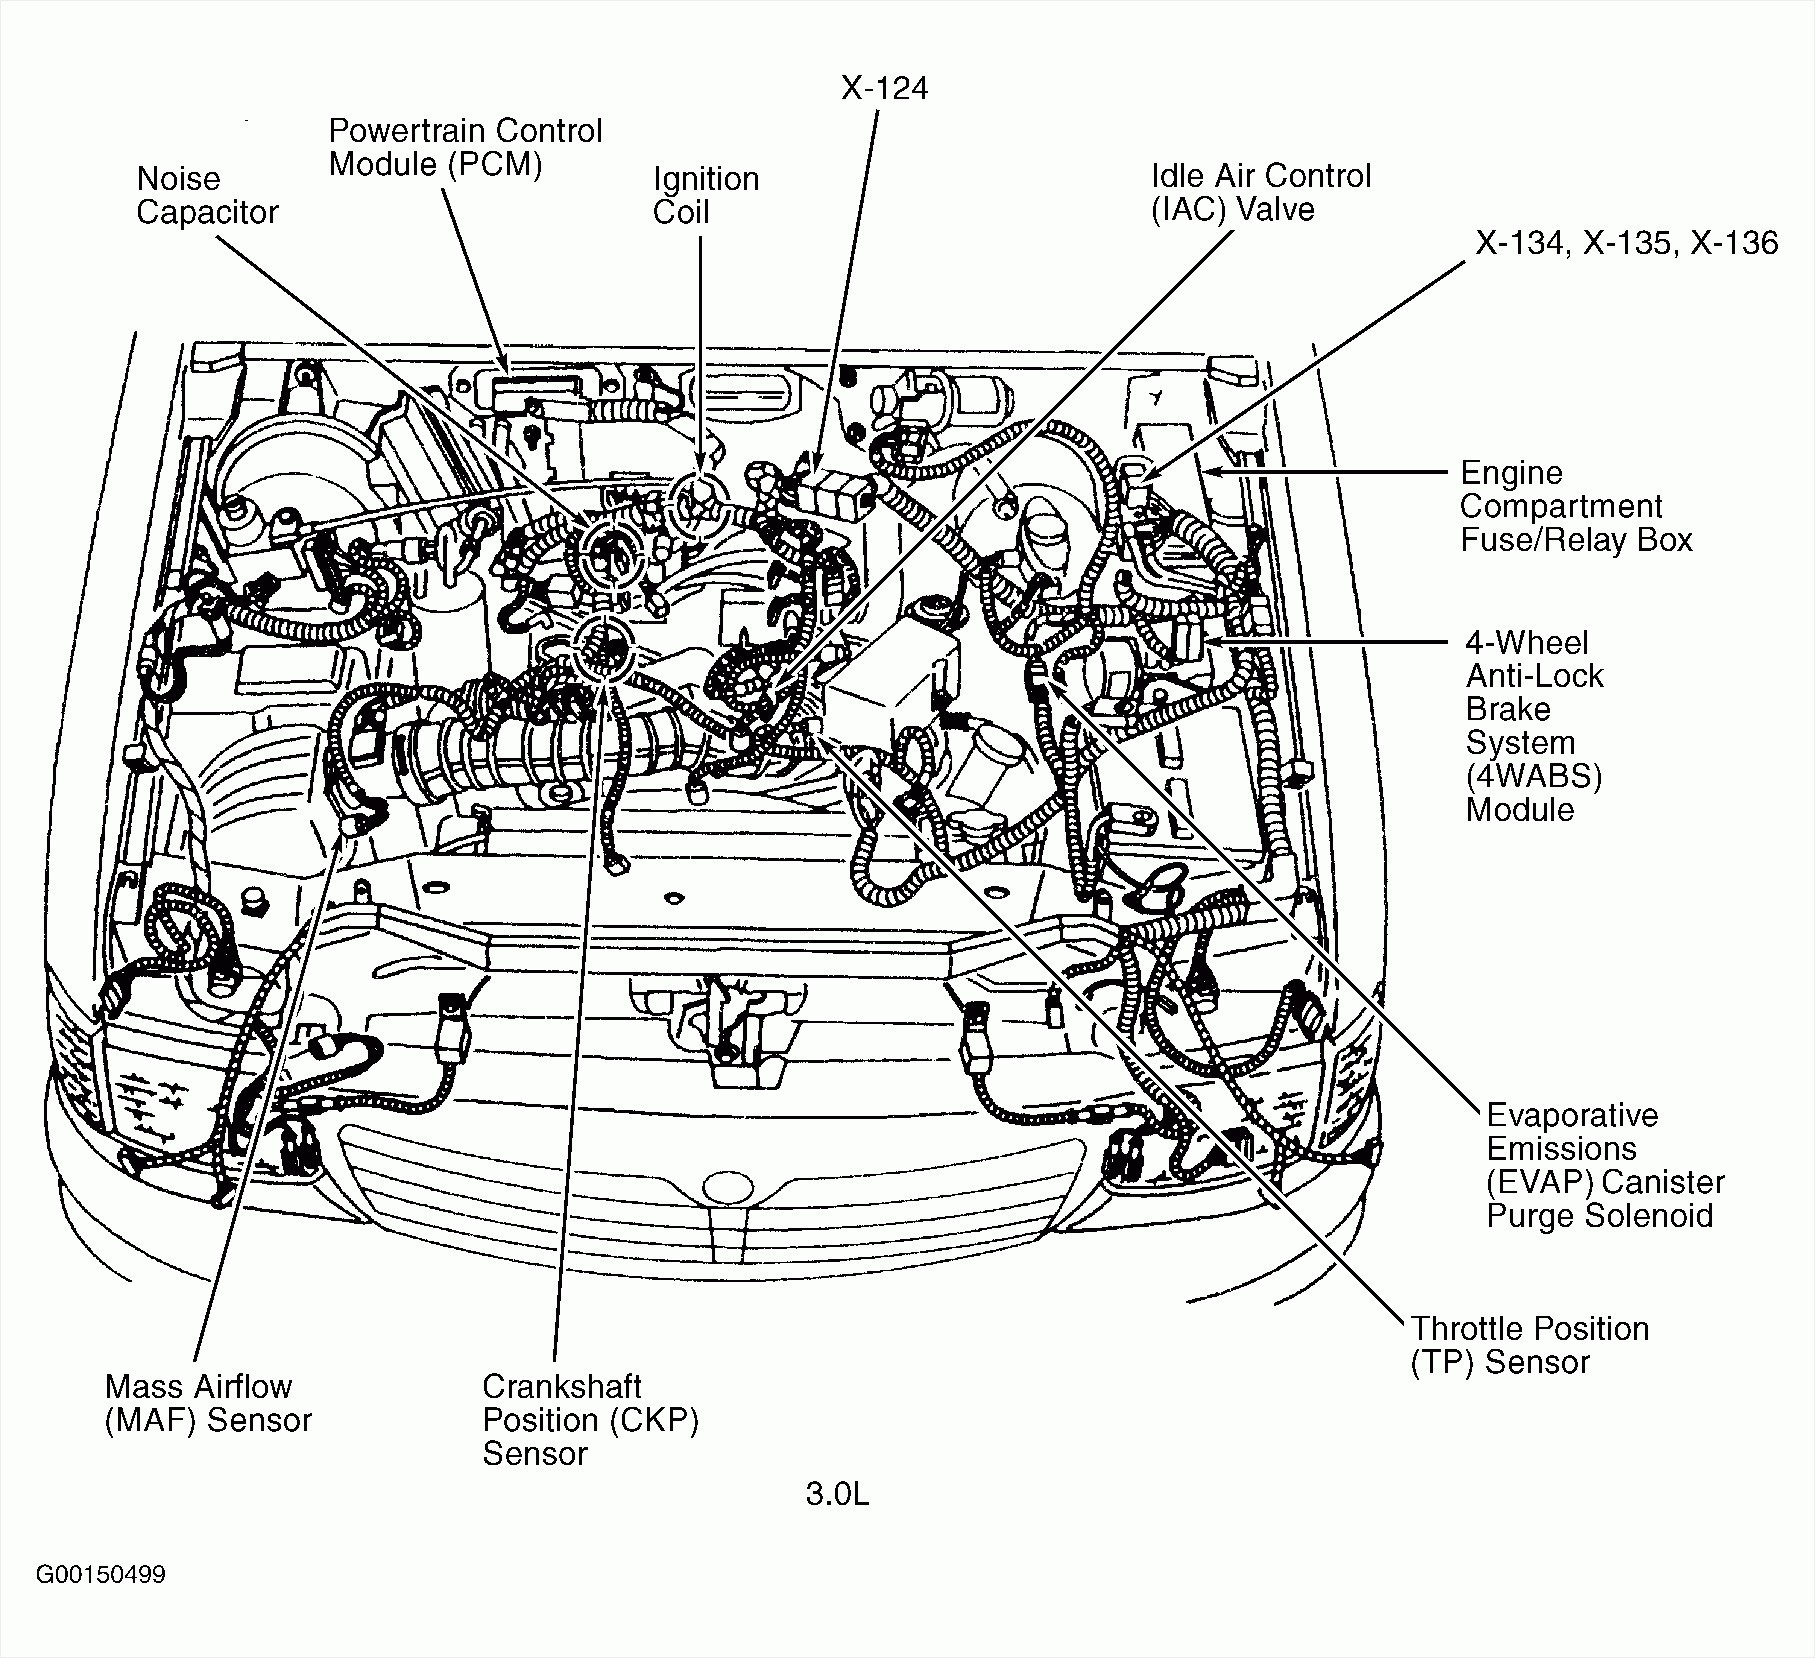 hight resolution of 2001 jeep grand cherokee vacuum line diagram lzk gallery schema 2001 jeep wrangler engine diagram